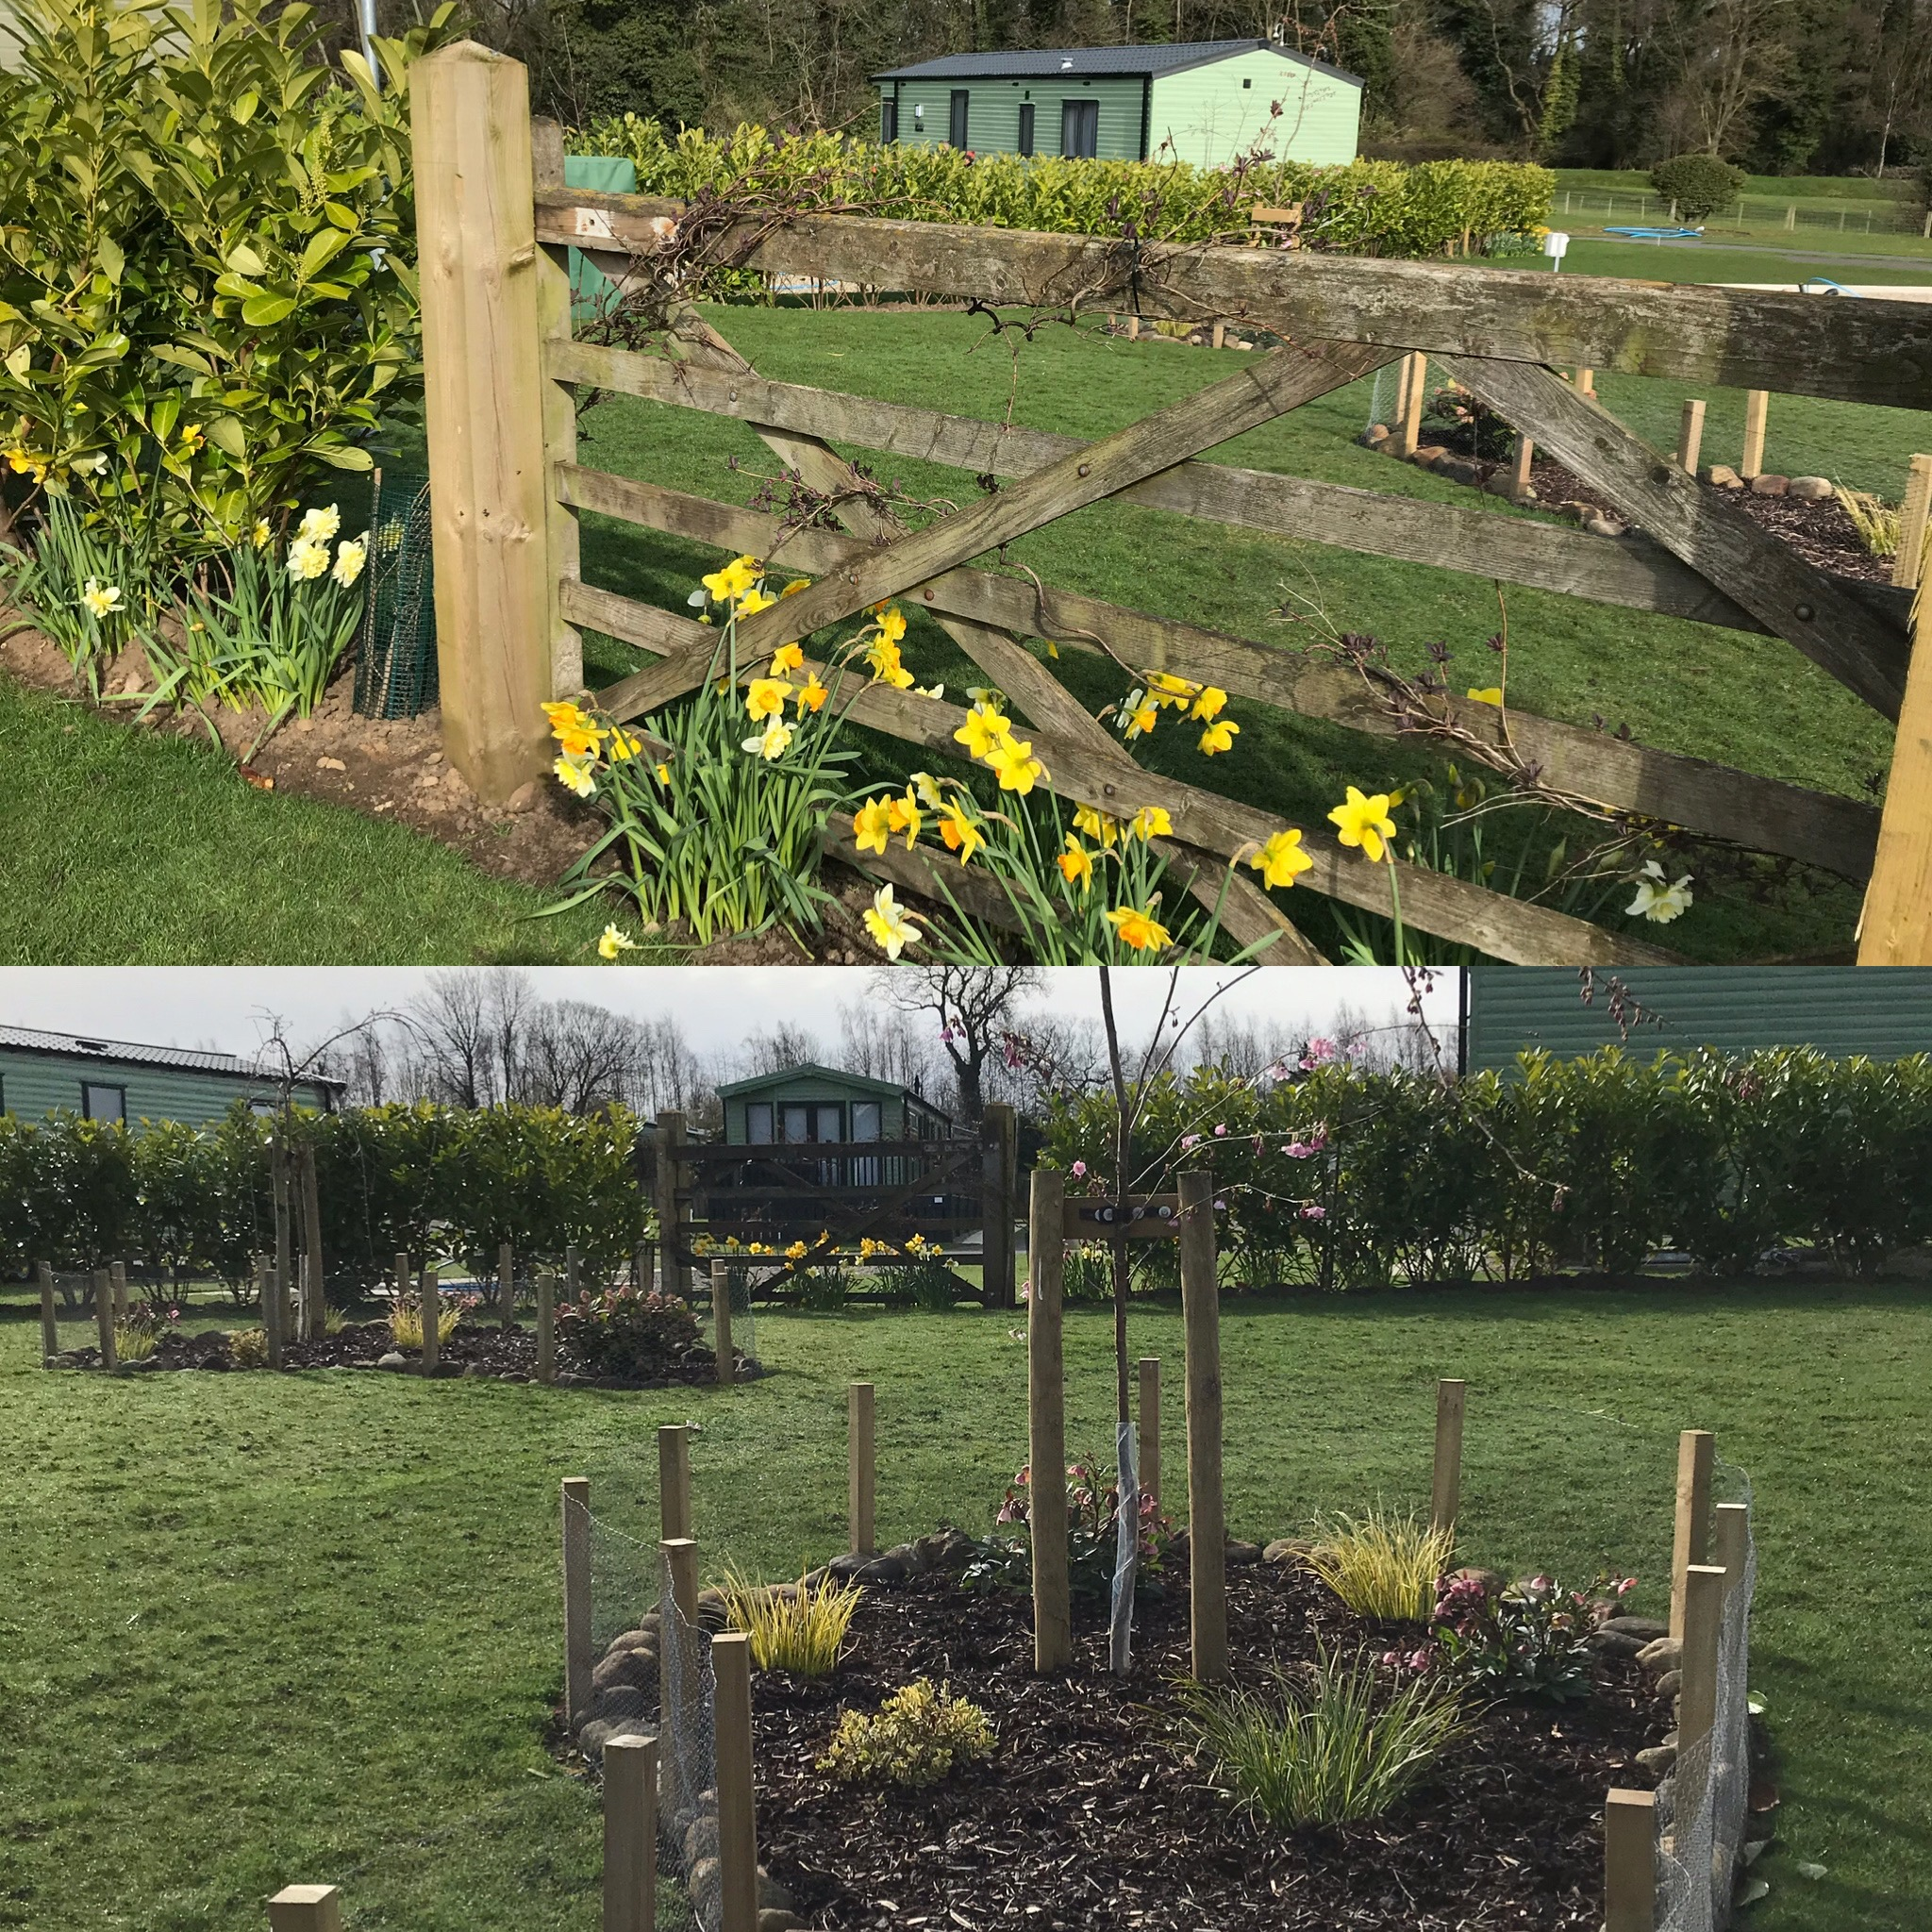 March 19th 2020 - Lovely Gardens!